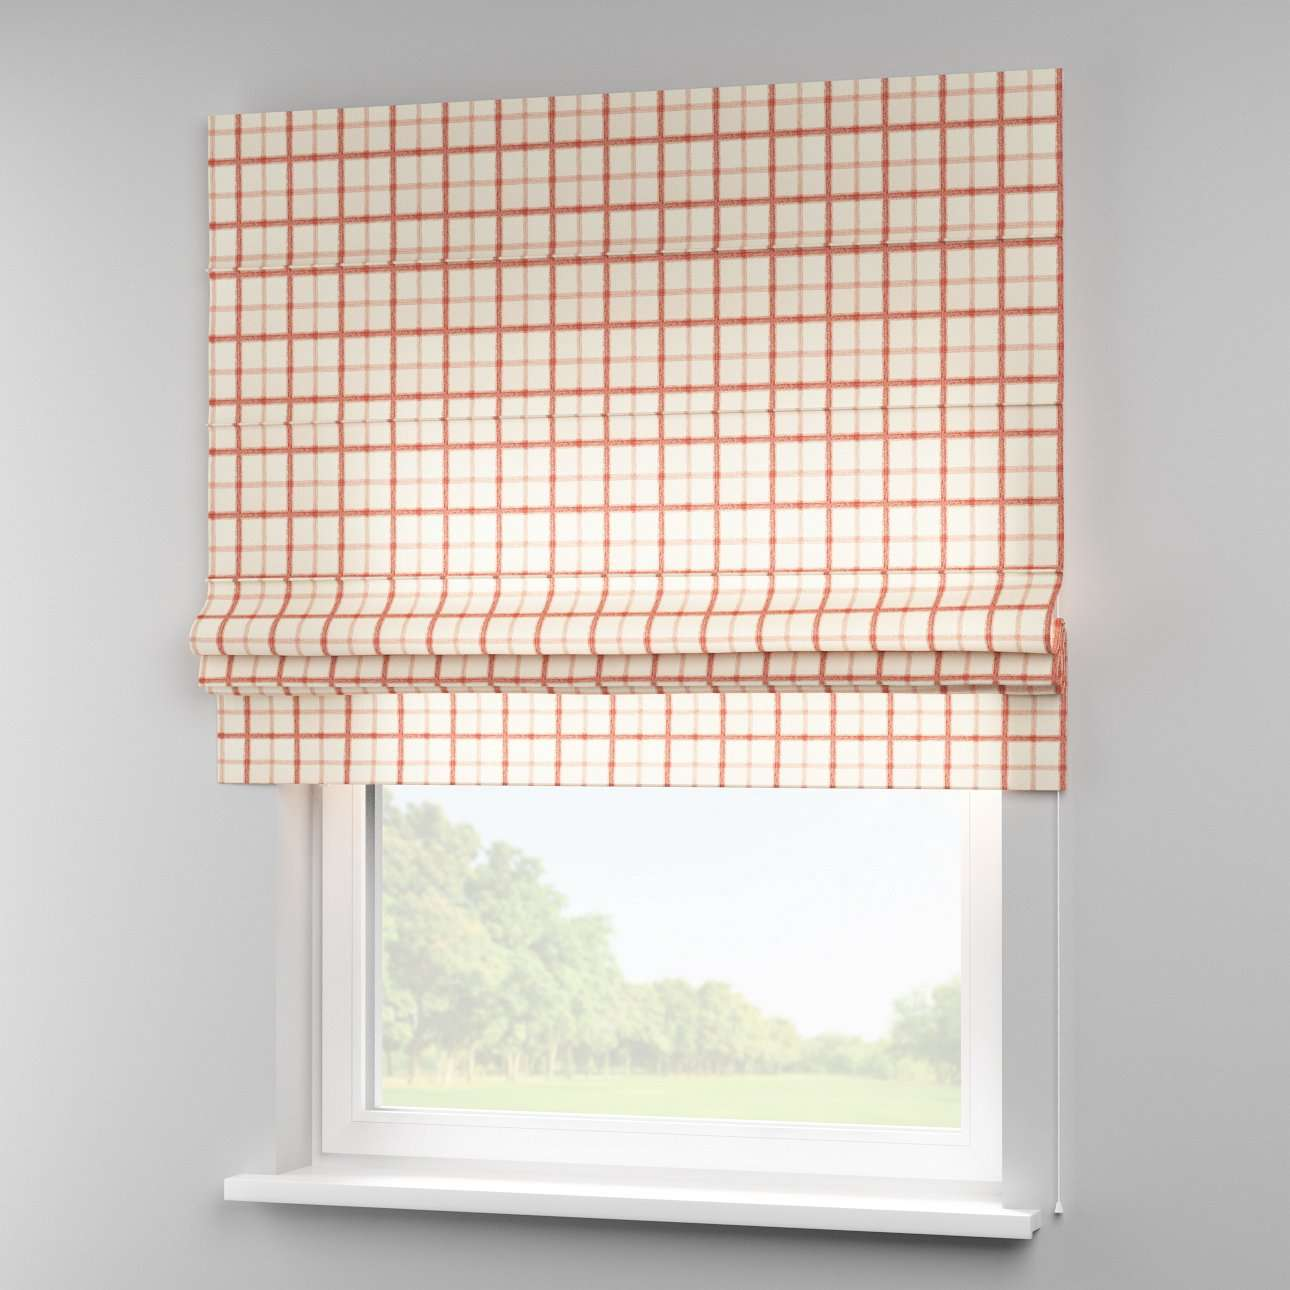 Padva roman blind  80 x 170 cm (31.5 x 67 inch) in collection Avinon, fabric: 131-15